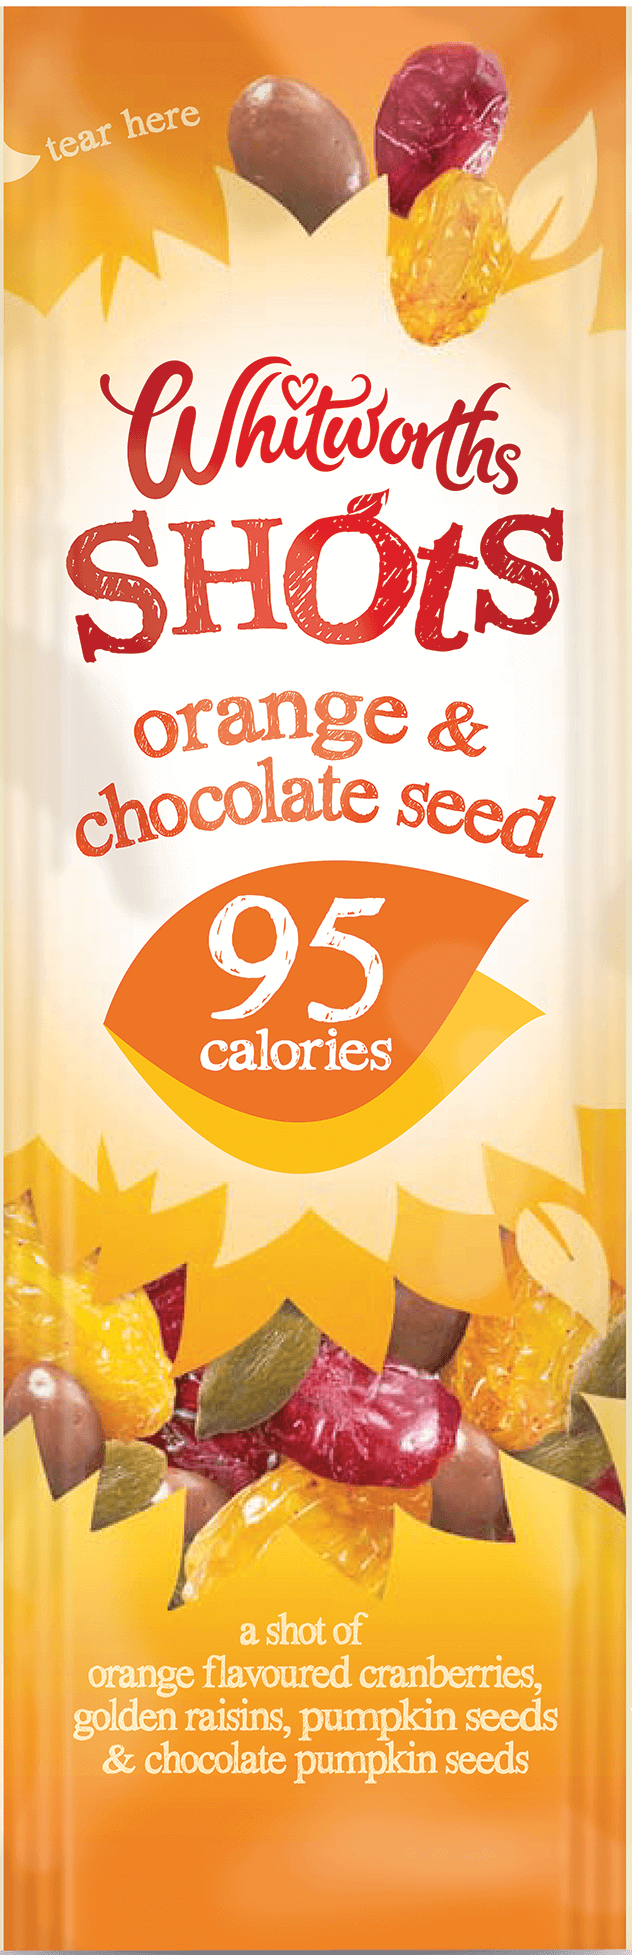 Whitworths Shots - Orange & Chocolate Seed (95 calories)